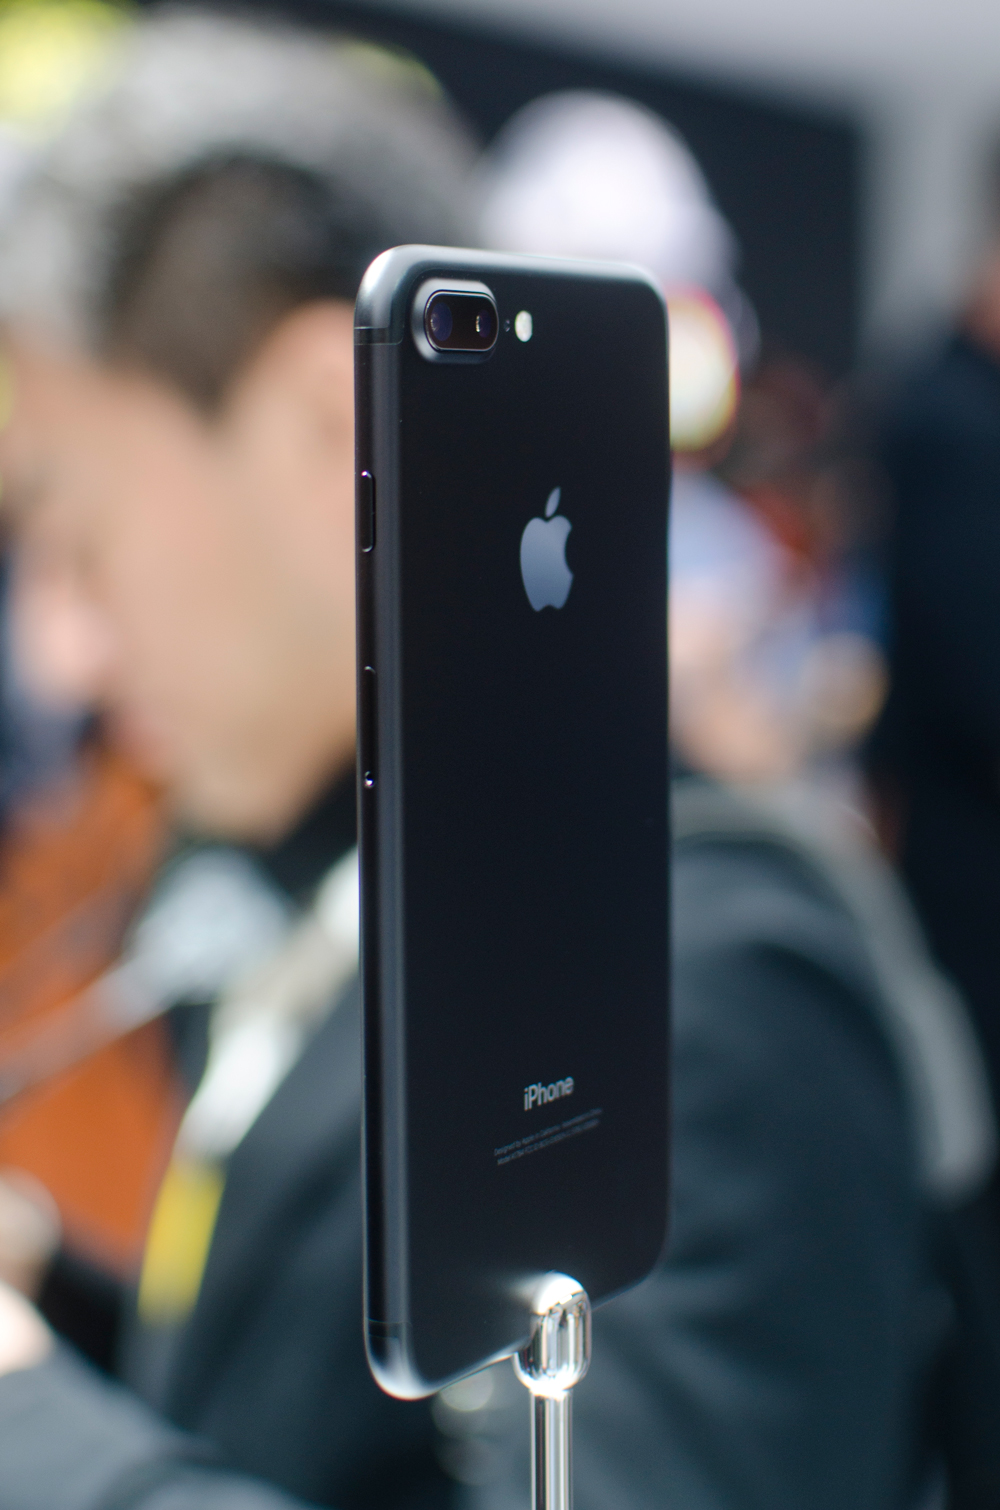 Poll results apple had better be preparing a space black iphone 7 - The Matte Black Iphone To Compare